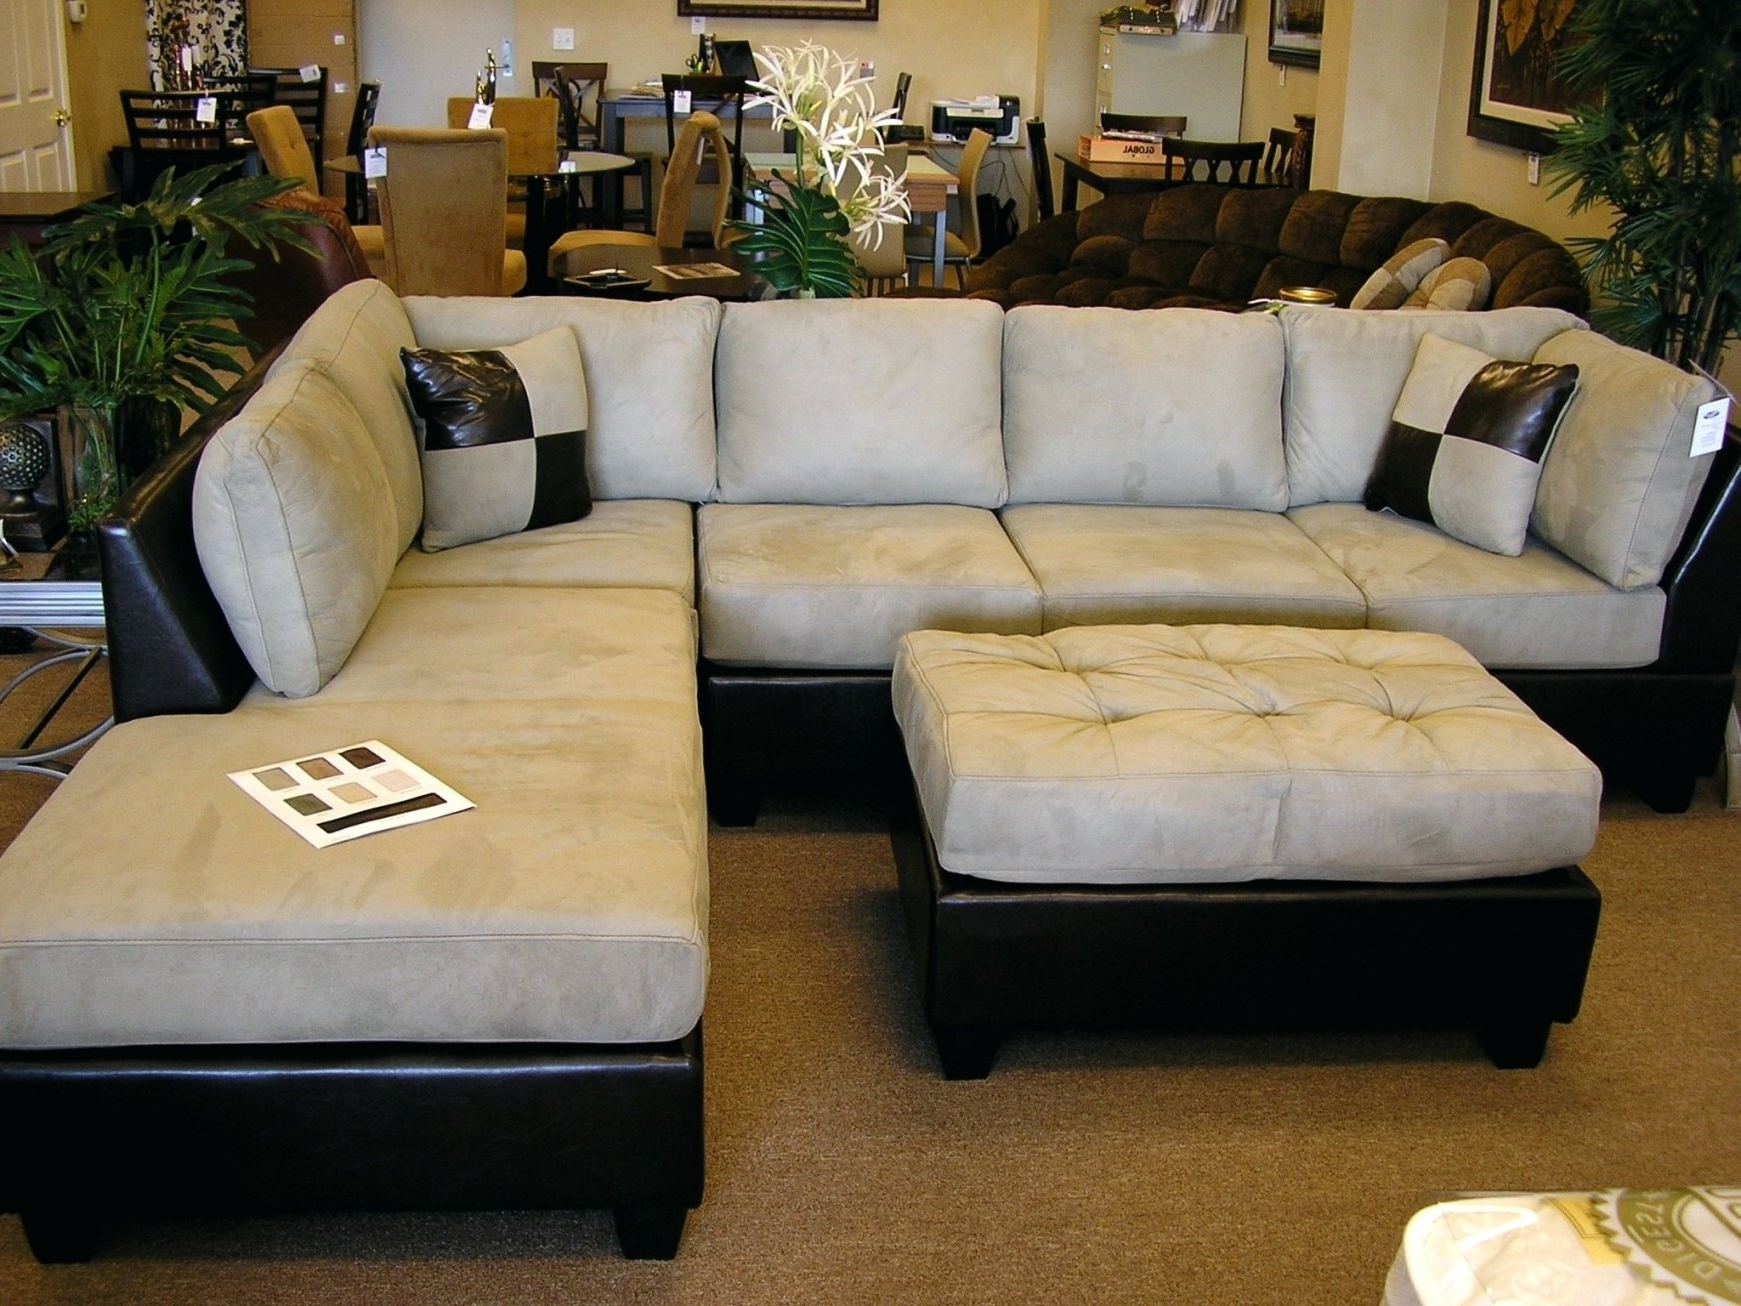 Widely Used Lazy Boy Chaise Lounges Within Boy Chaise Lounge Chairs Lazy Boy Sectional Sofas For In Lazy Boy (View 15 of 15)